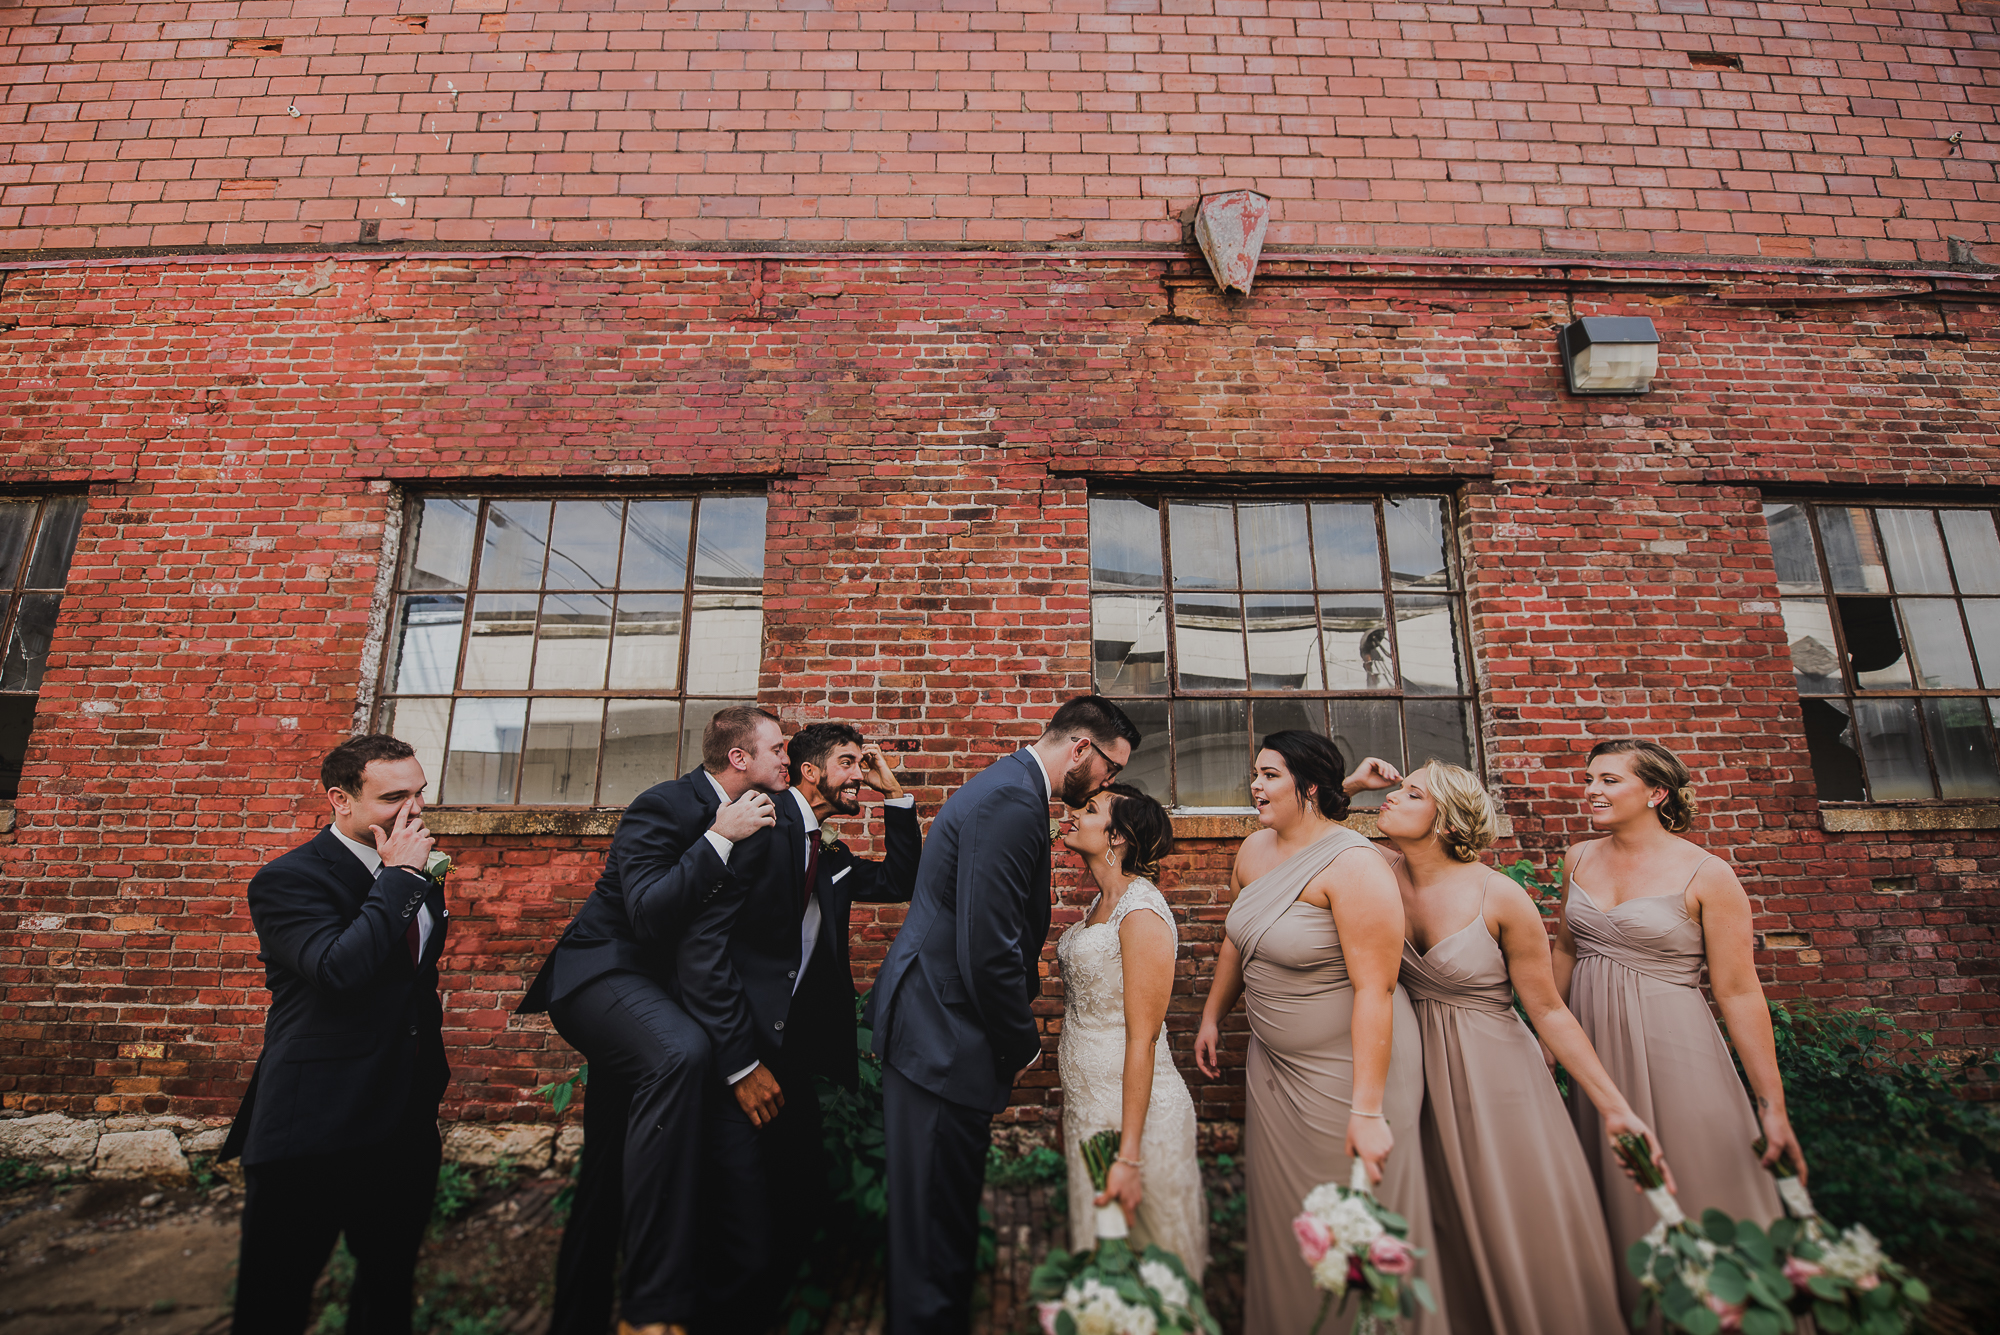 Melissa Cervantes Photography _ Kelsey + Ben Junebug Weddings Submission-92.jpg